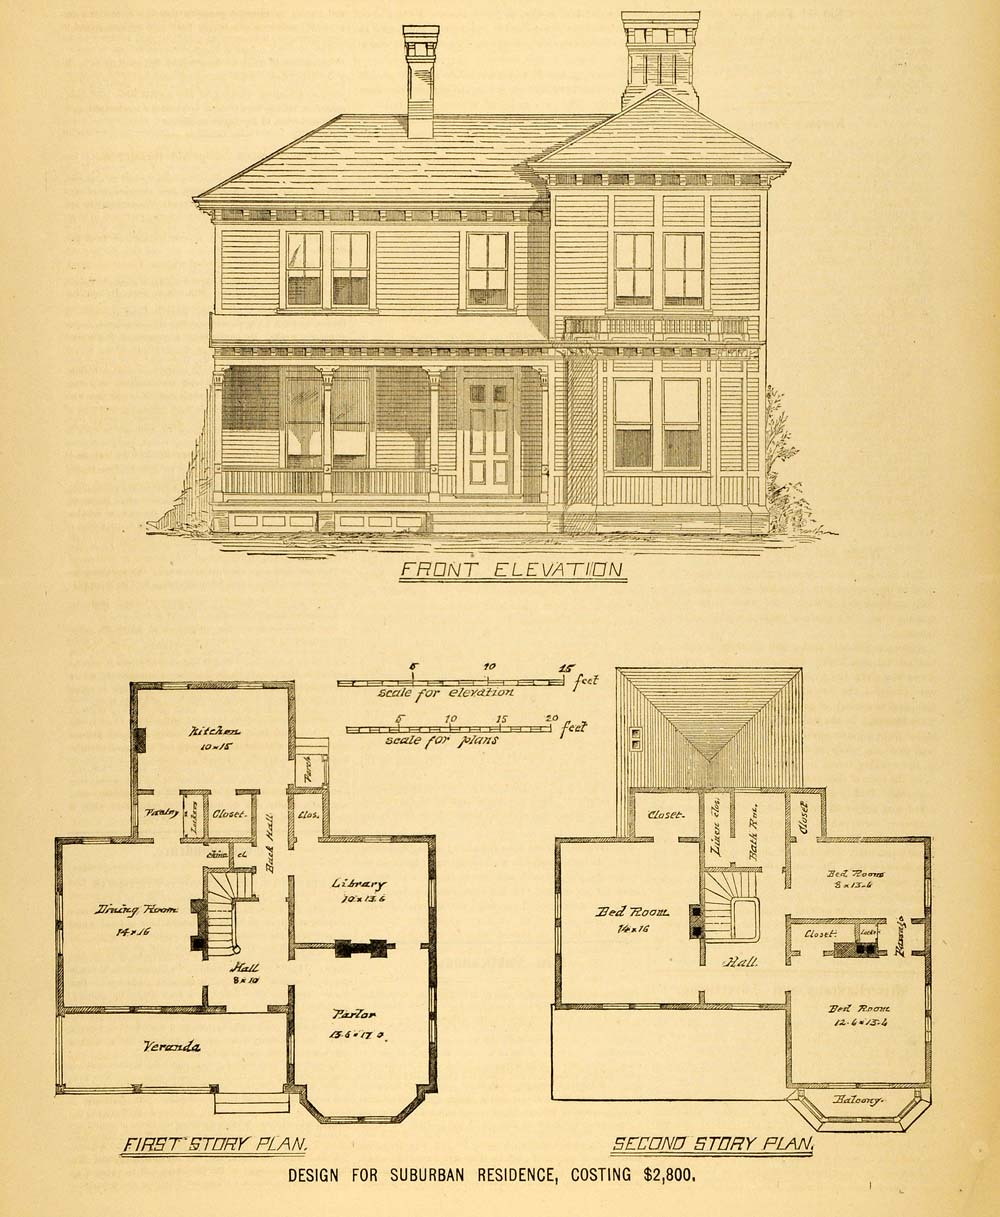 1878 print house architectural design floor plans Building plan printing